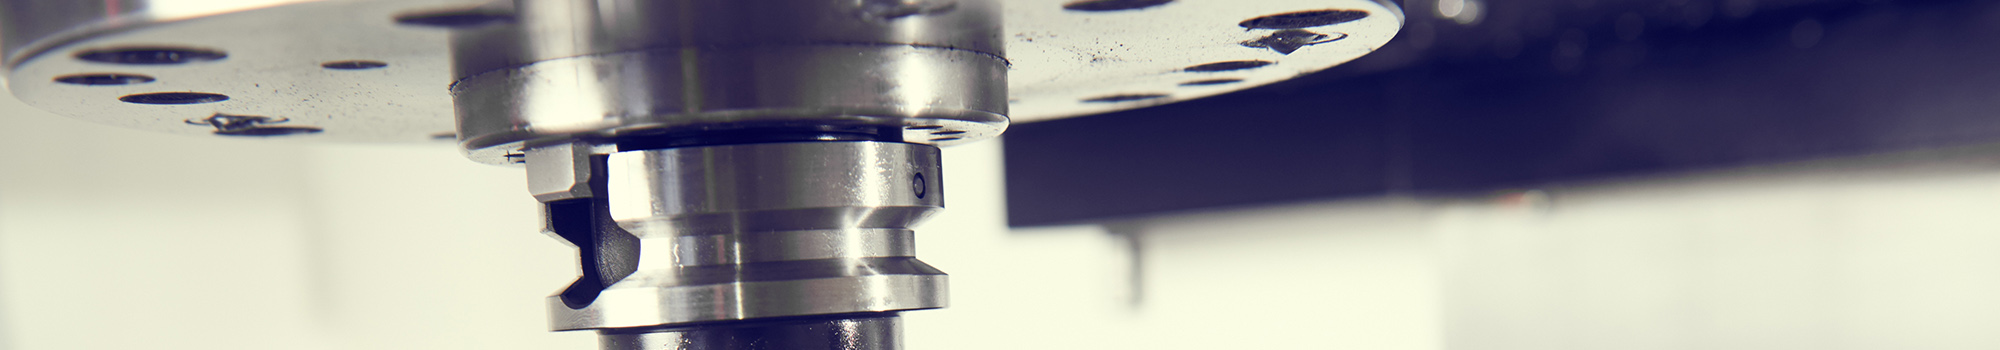 Contact Precision Engineering UK Ltd